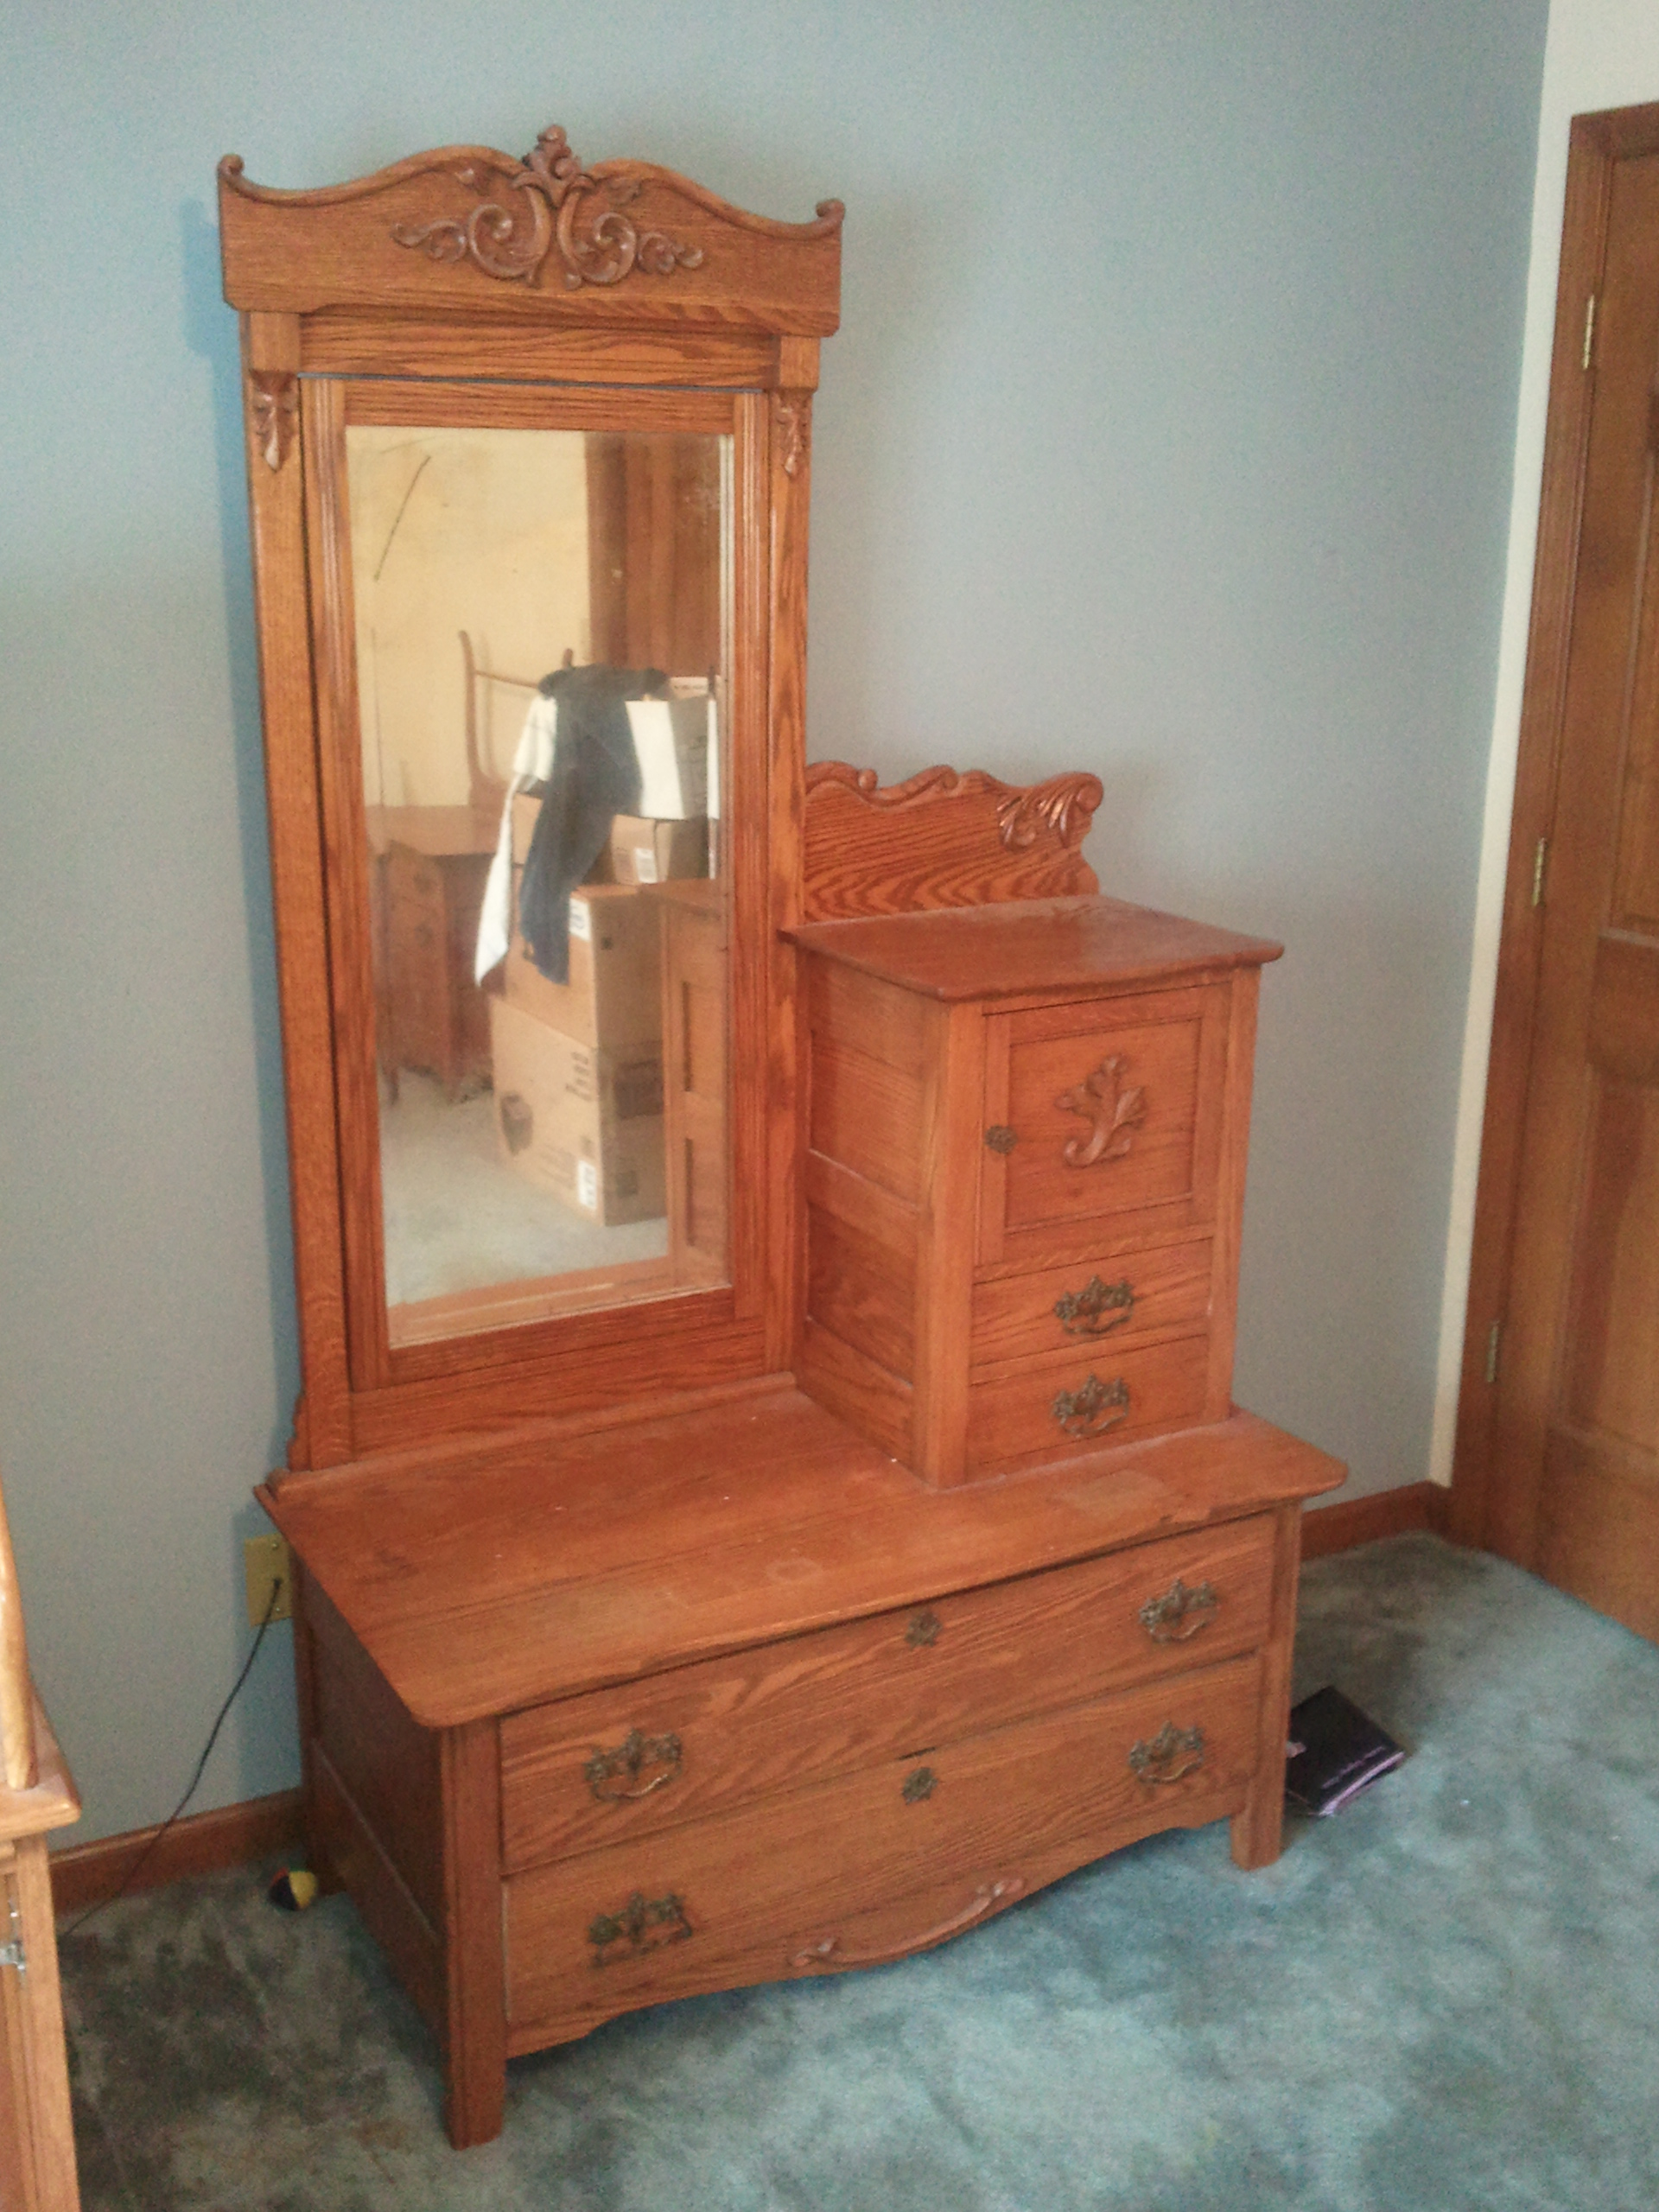 3 piece antique bedroom set for sale for Antique bedroom furniture